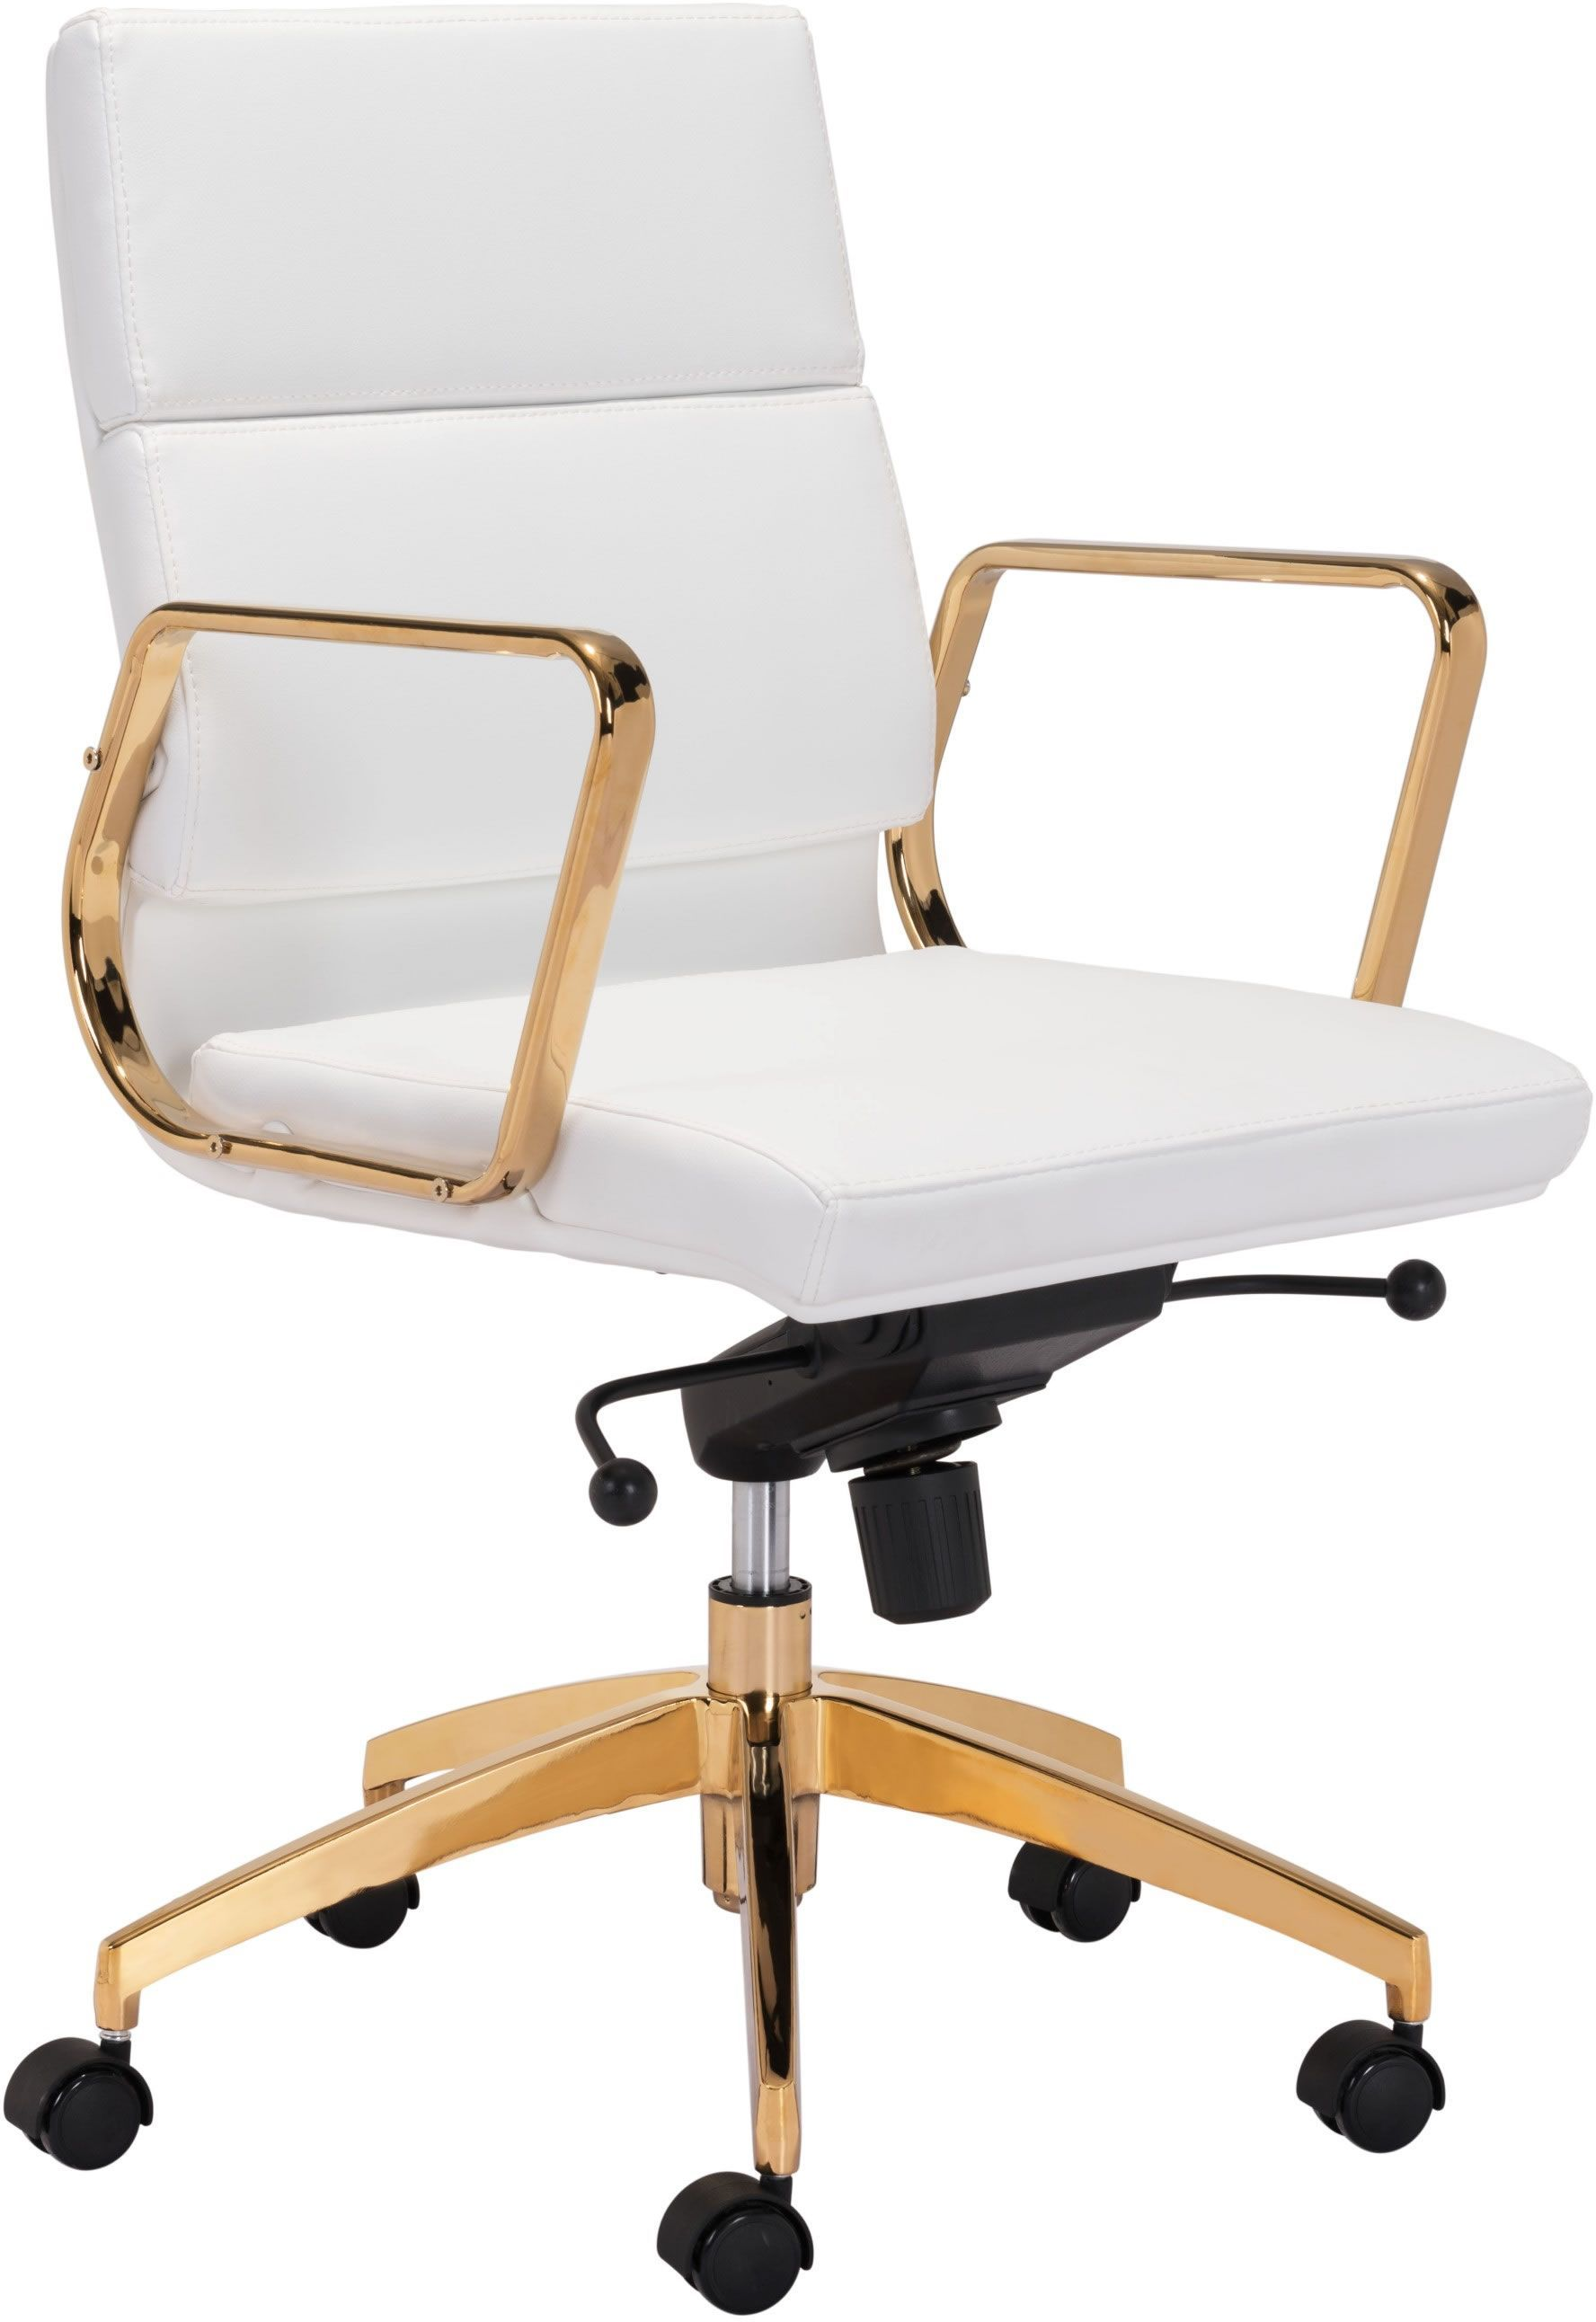 White And Gold Desk Chair Zuo Modern Scientist Low Back Office Chair White And Gold